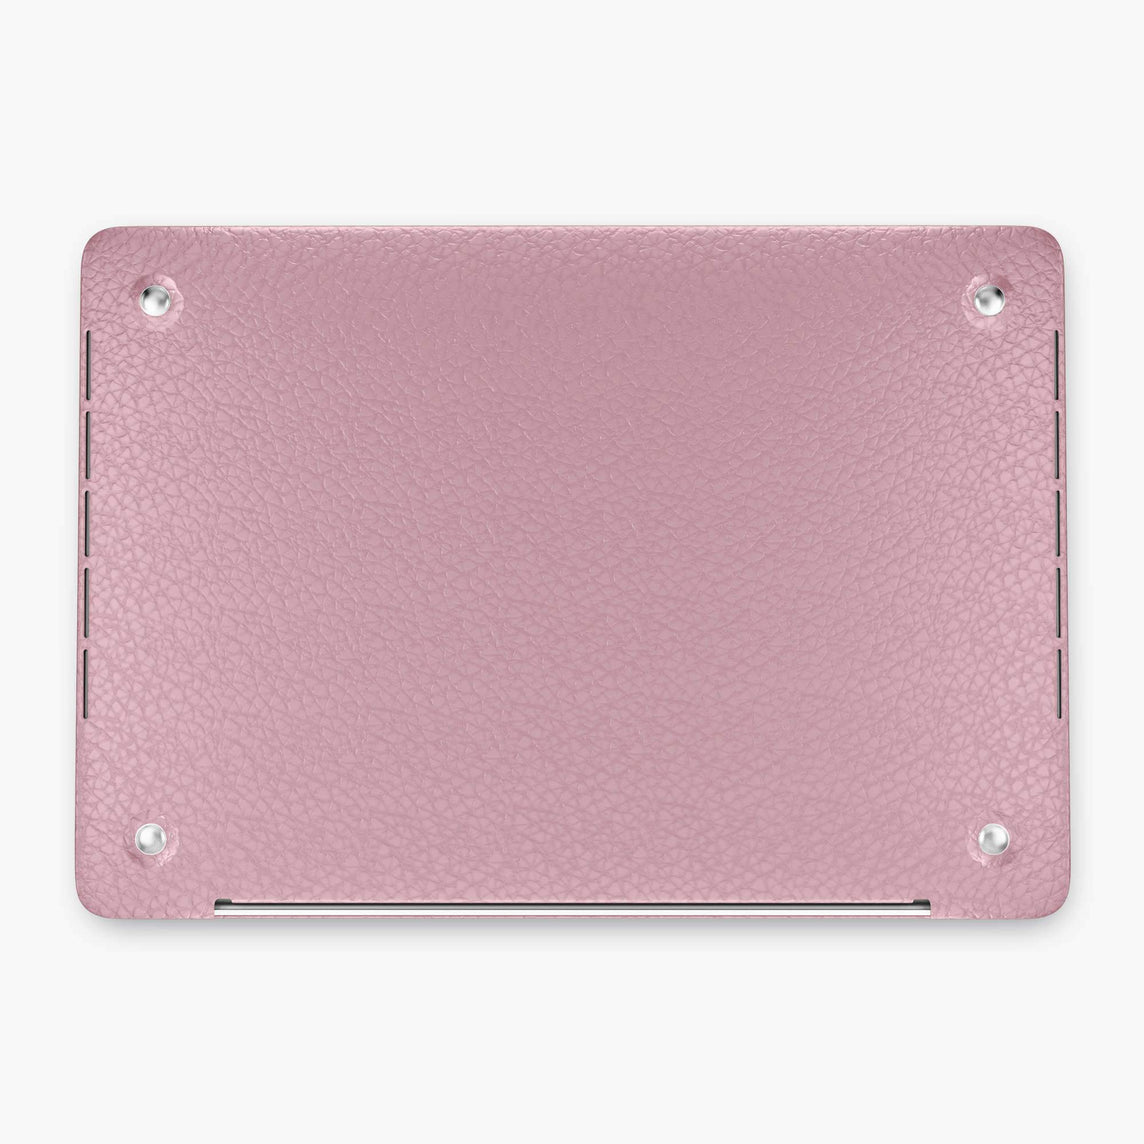 Calfskin Macbook Case Apple Mac Book 15'' Pro | Pink - Stainless Steel